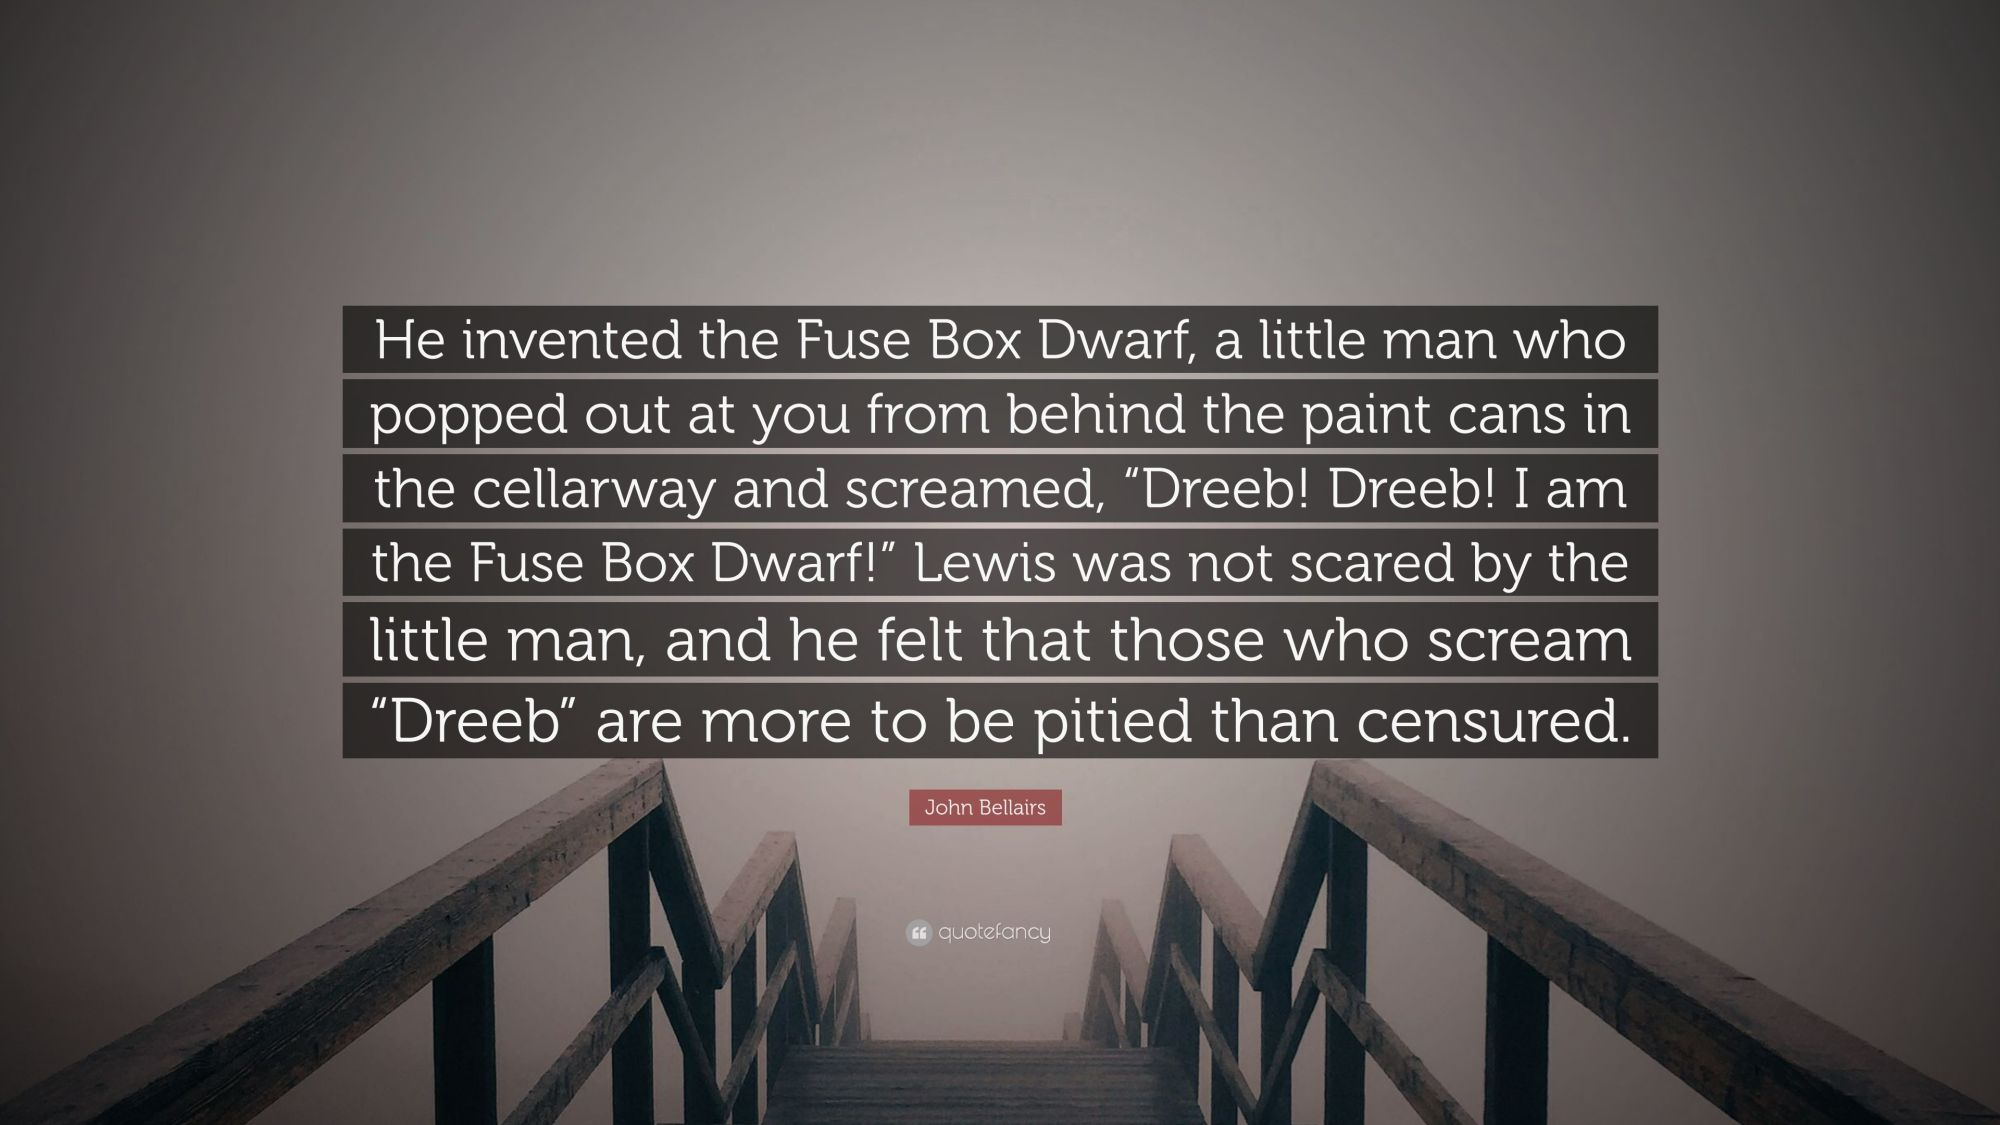 hight resolution of john bellairs quote he invented the fuse box dwarf a little man who